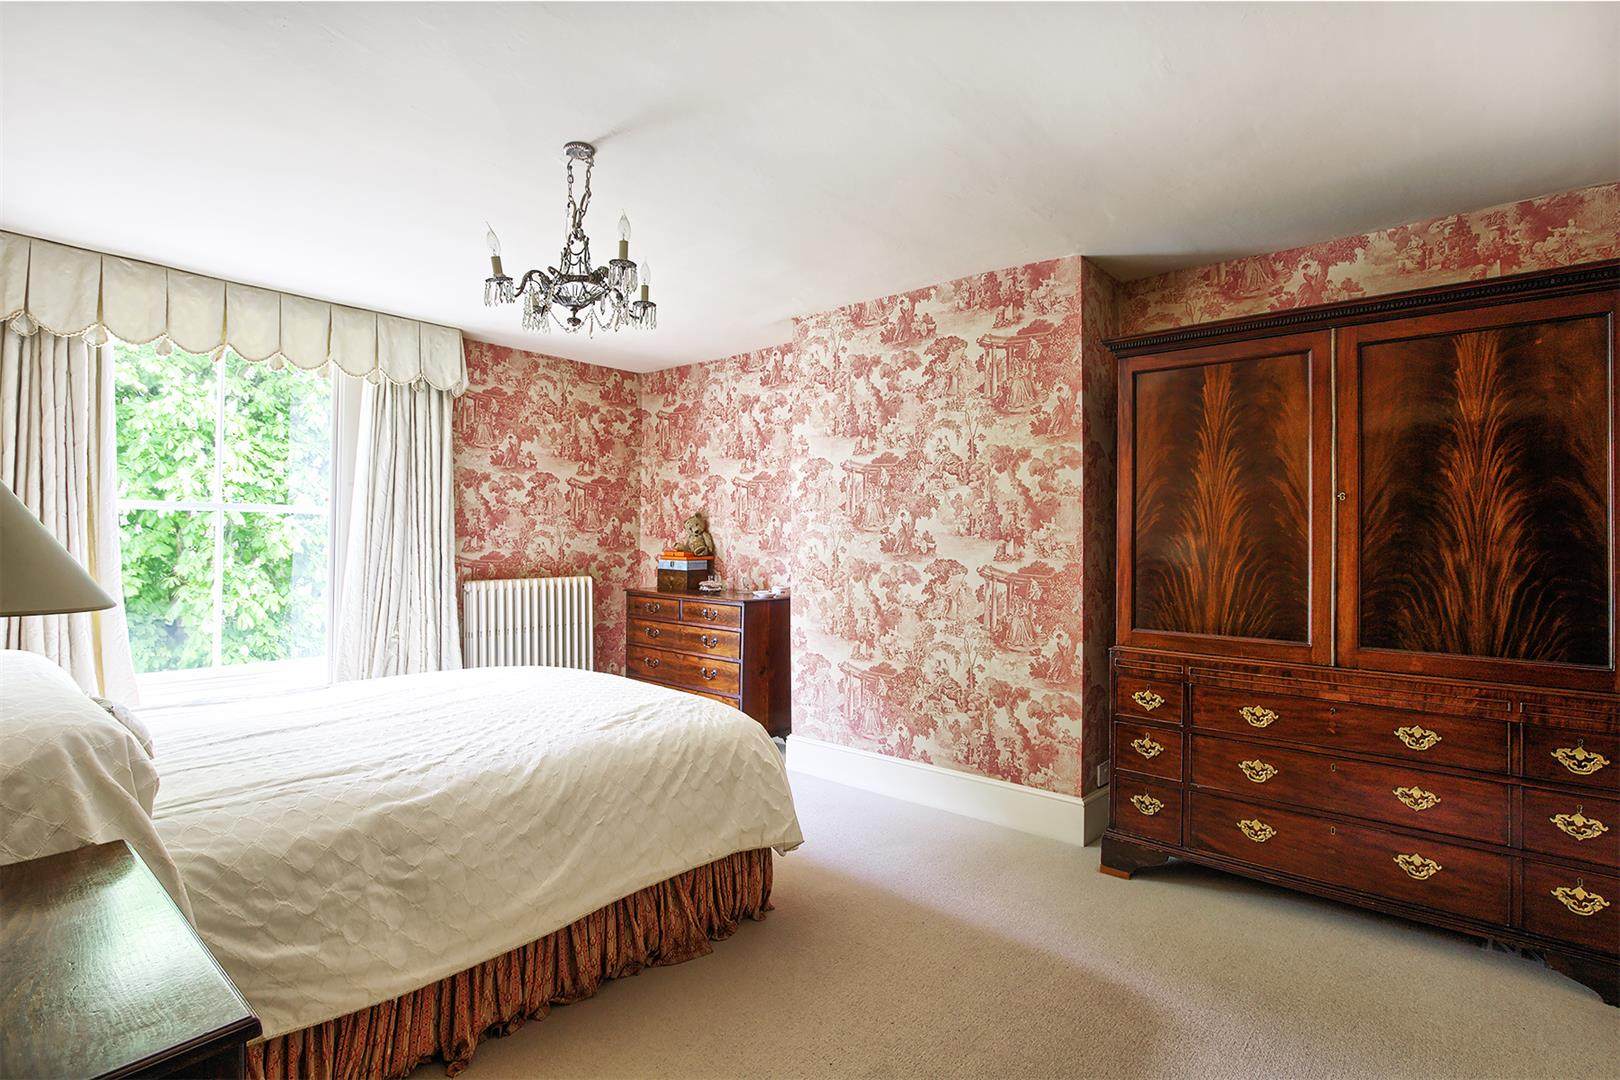 5 bedroom detached house For Sale in Bolton - master bed.png.